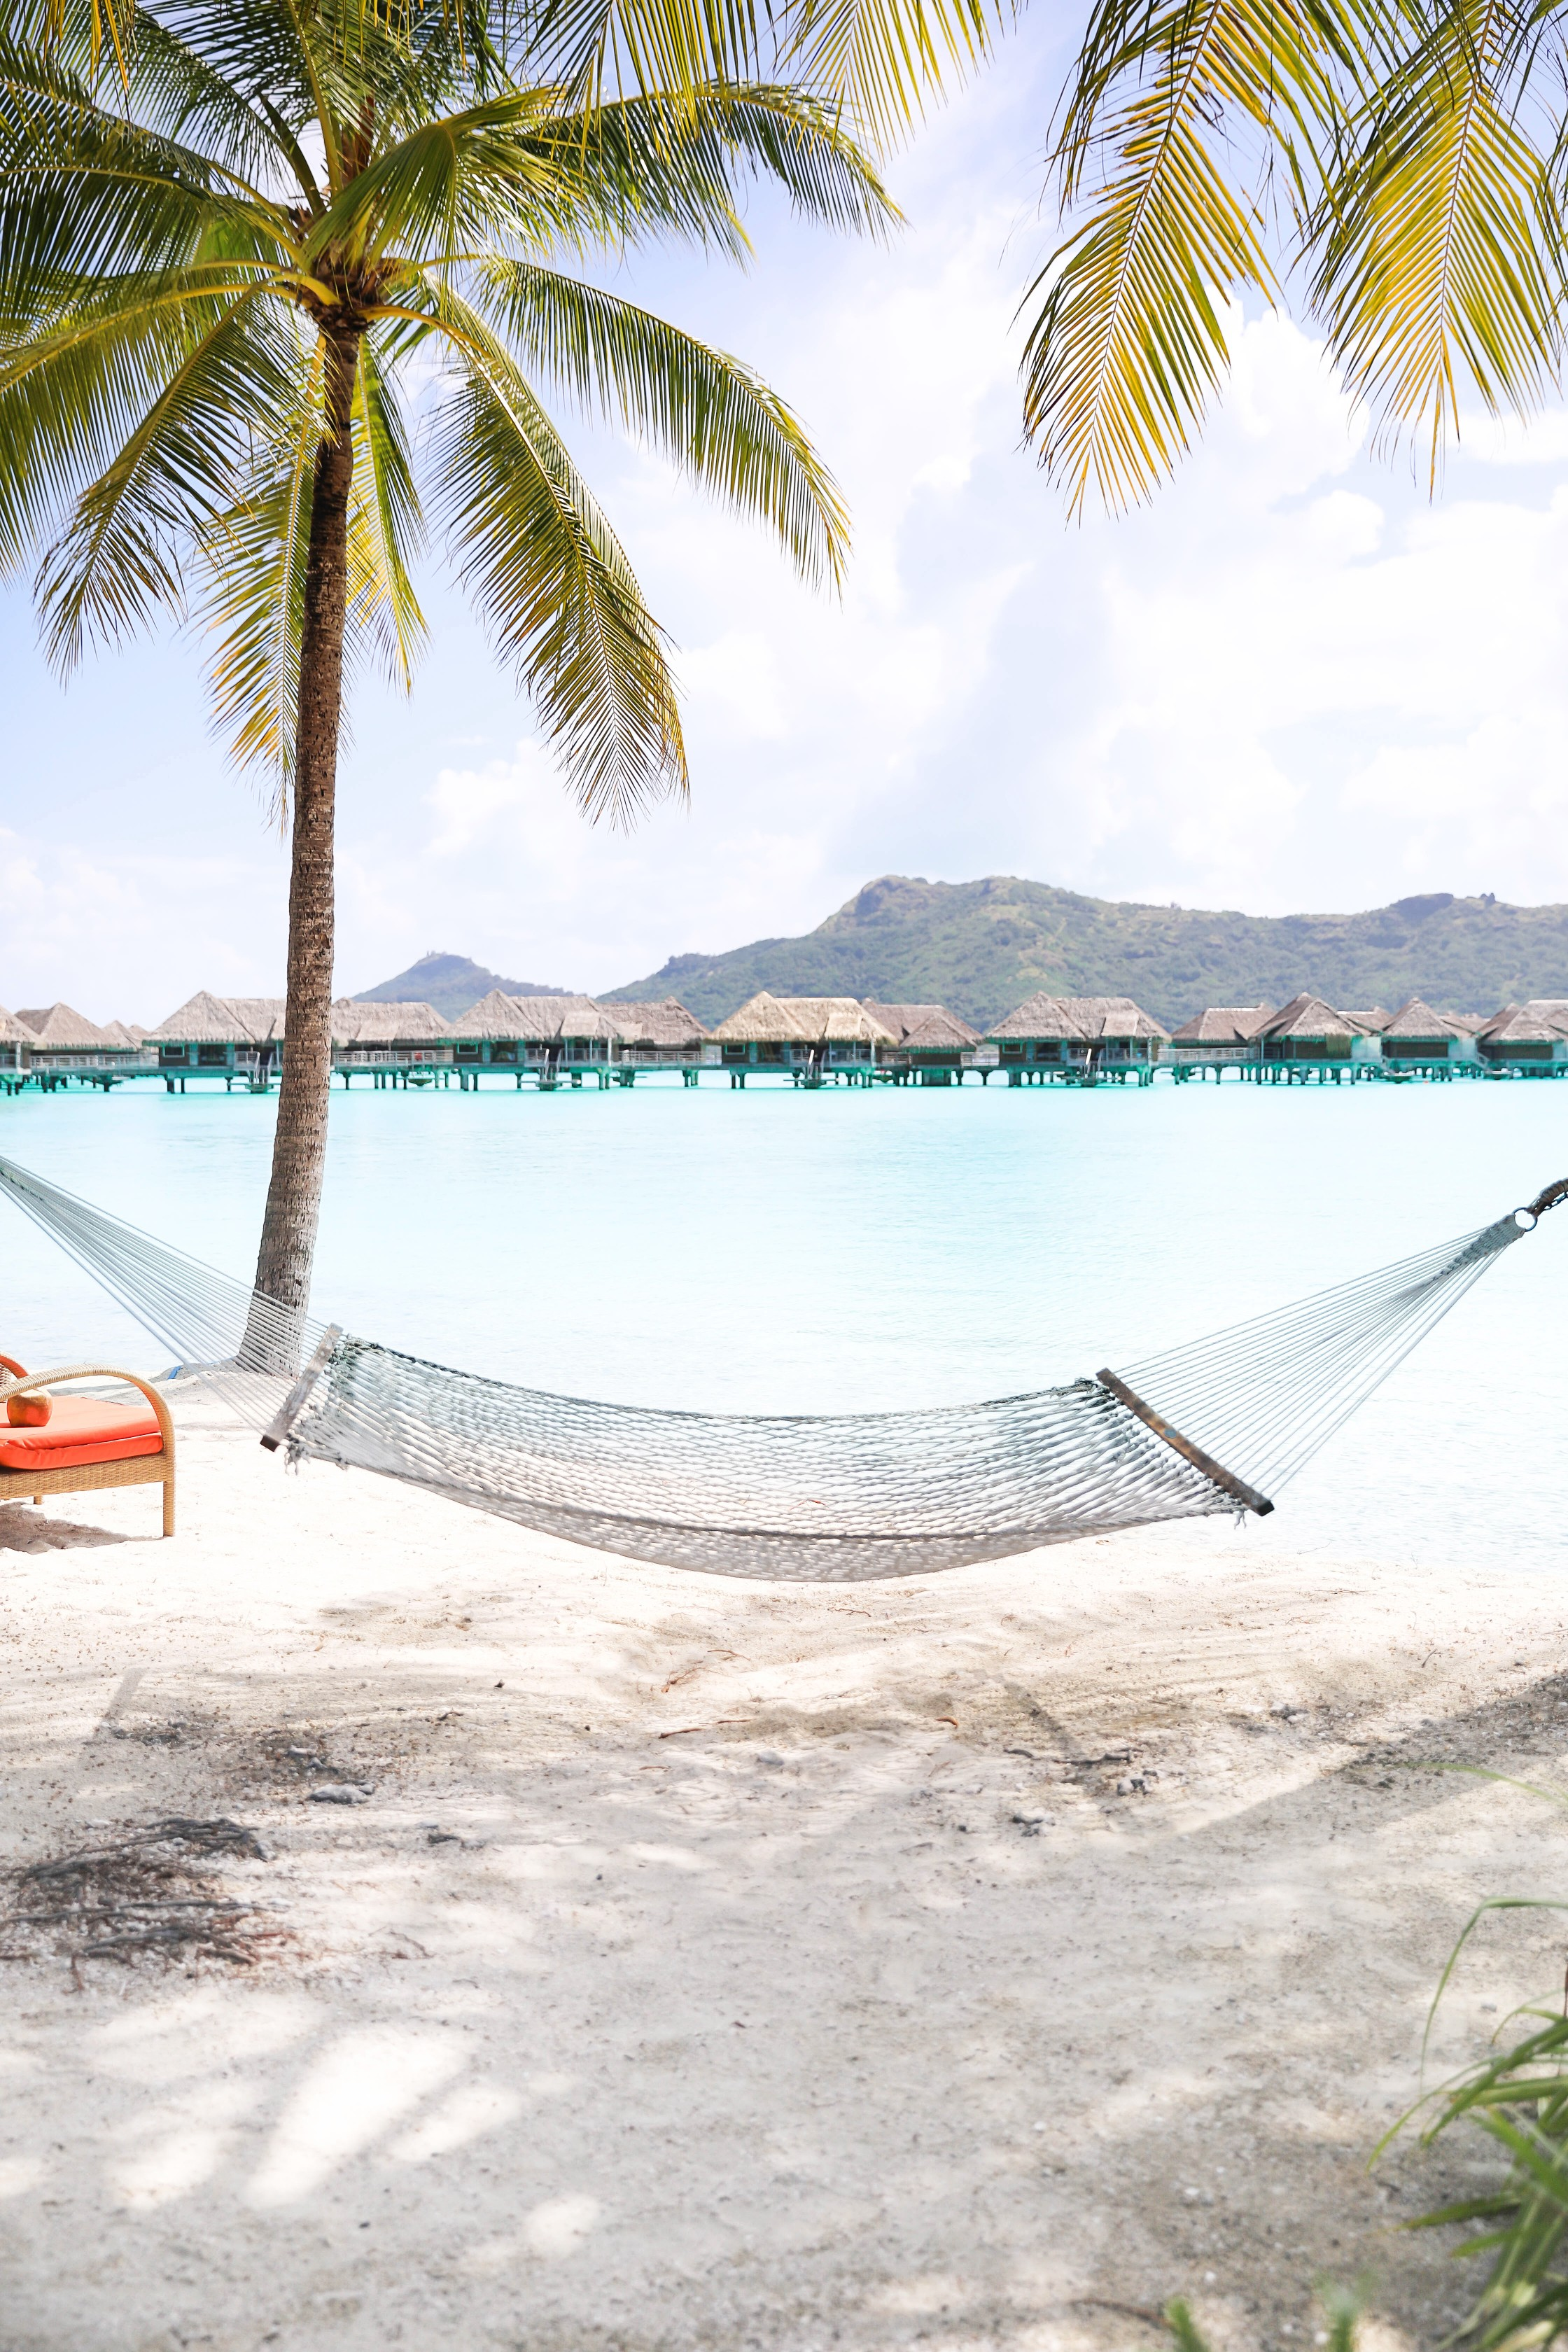 Bora Bora beach! Beautiful palm tree on beach with turquoise blue water! Hammock on the beach! Details on travel blog and fashion blog daily dose of charm by lauren lindmark